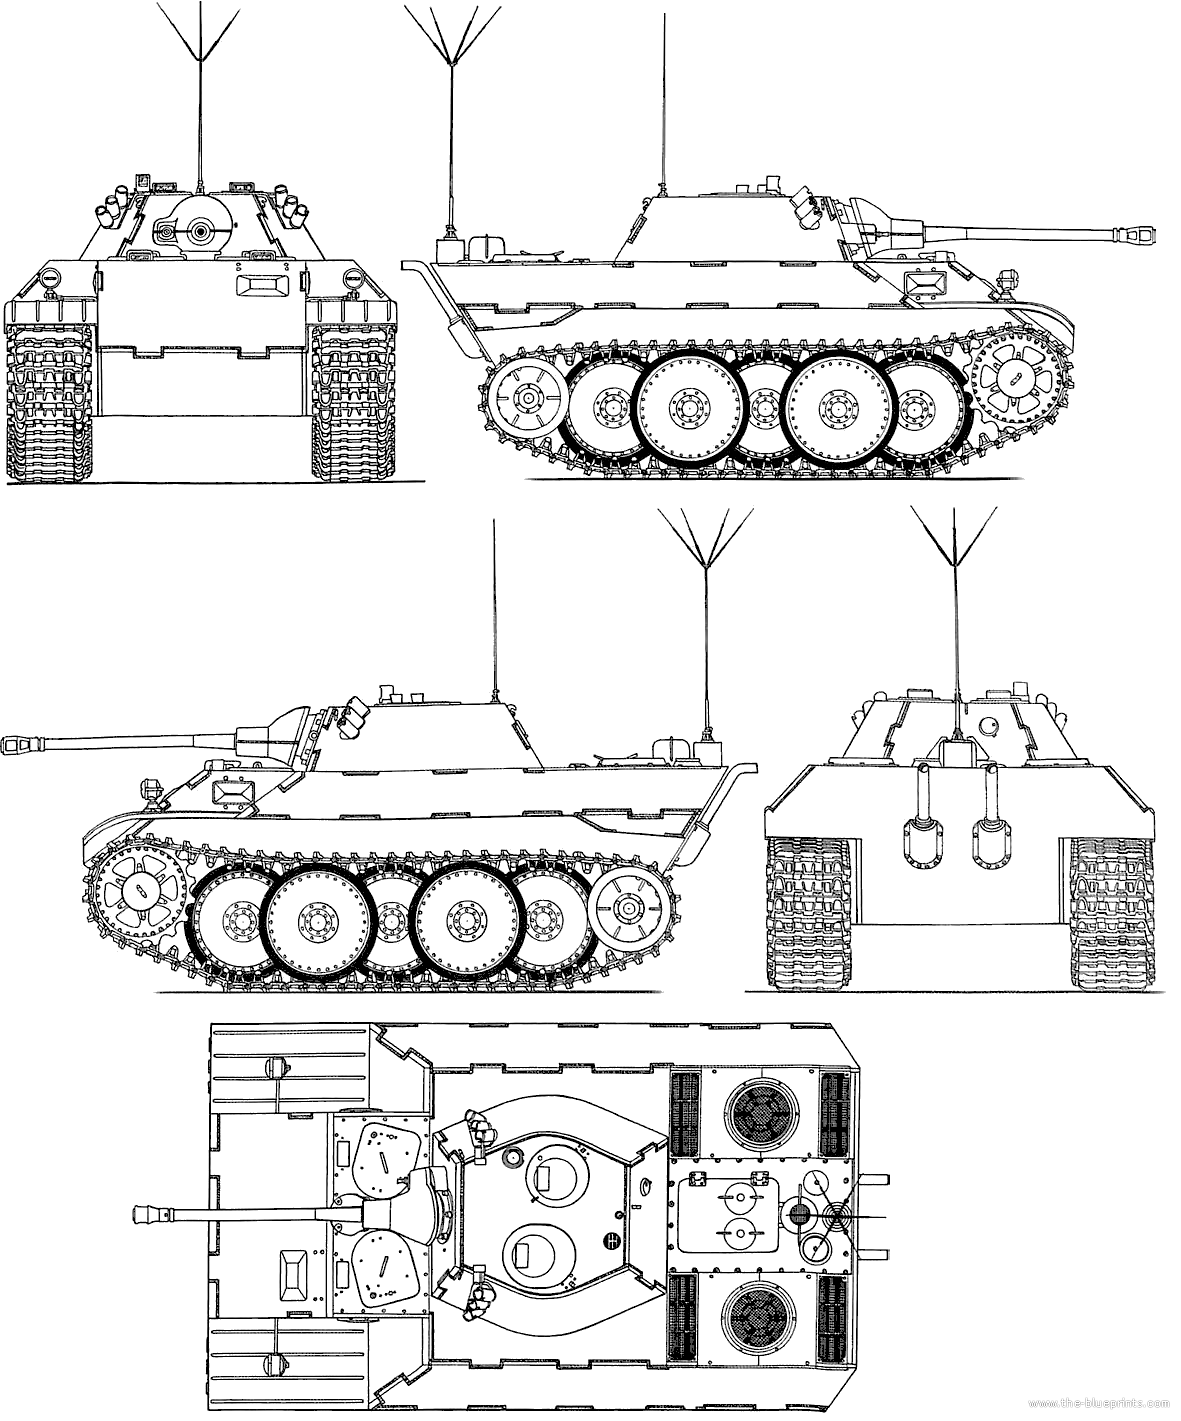 With The New Lt Abilities Being Added Ghaijeen Plz Vk 16 02 Leopard Warthunder